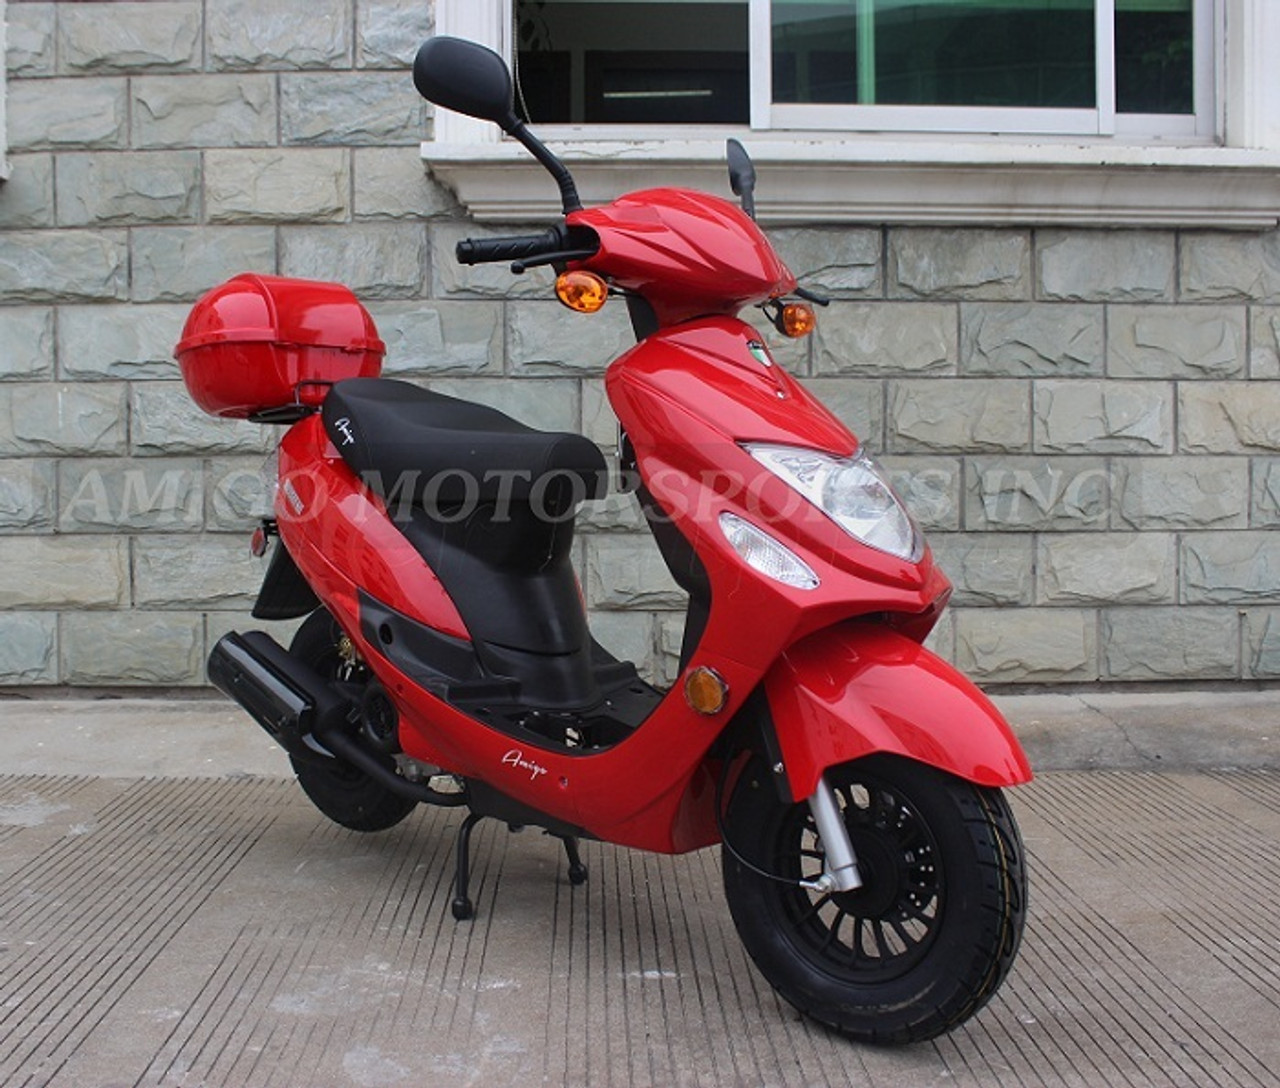 Amigo 2018 Beemer-50 49cc Moped Scooter 4 Stroke Single Cylinder CA Approved